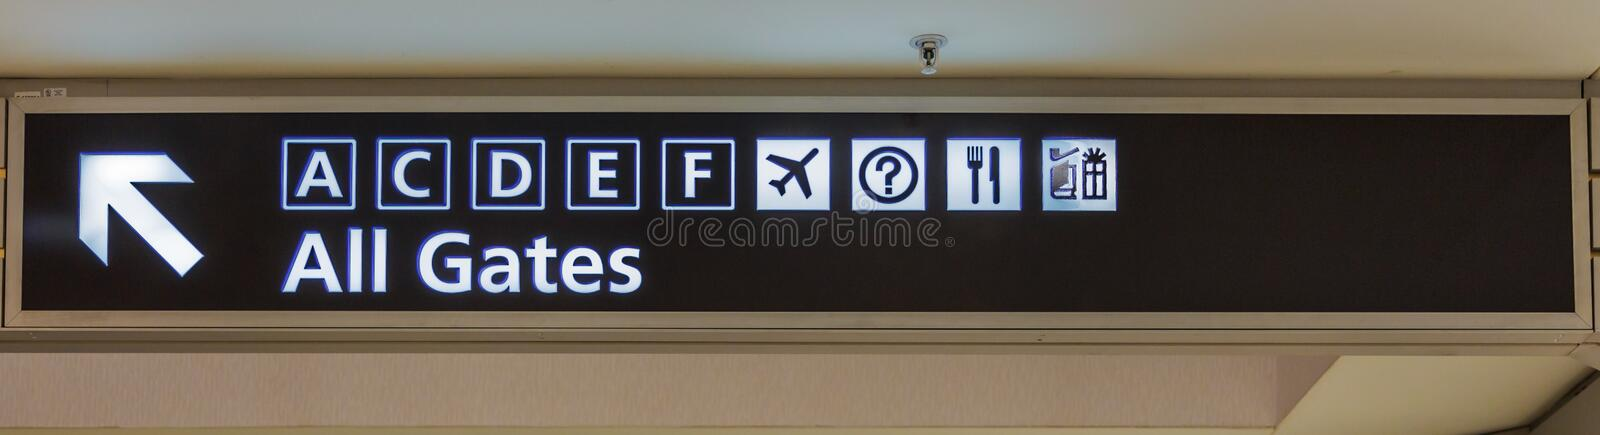 Airport All Gates Sign. Airside sign directing passengers to departure gates location stock images